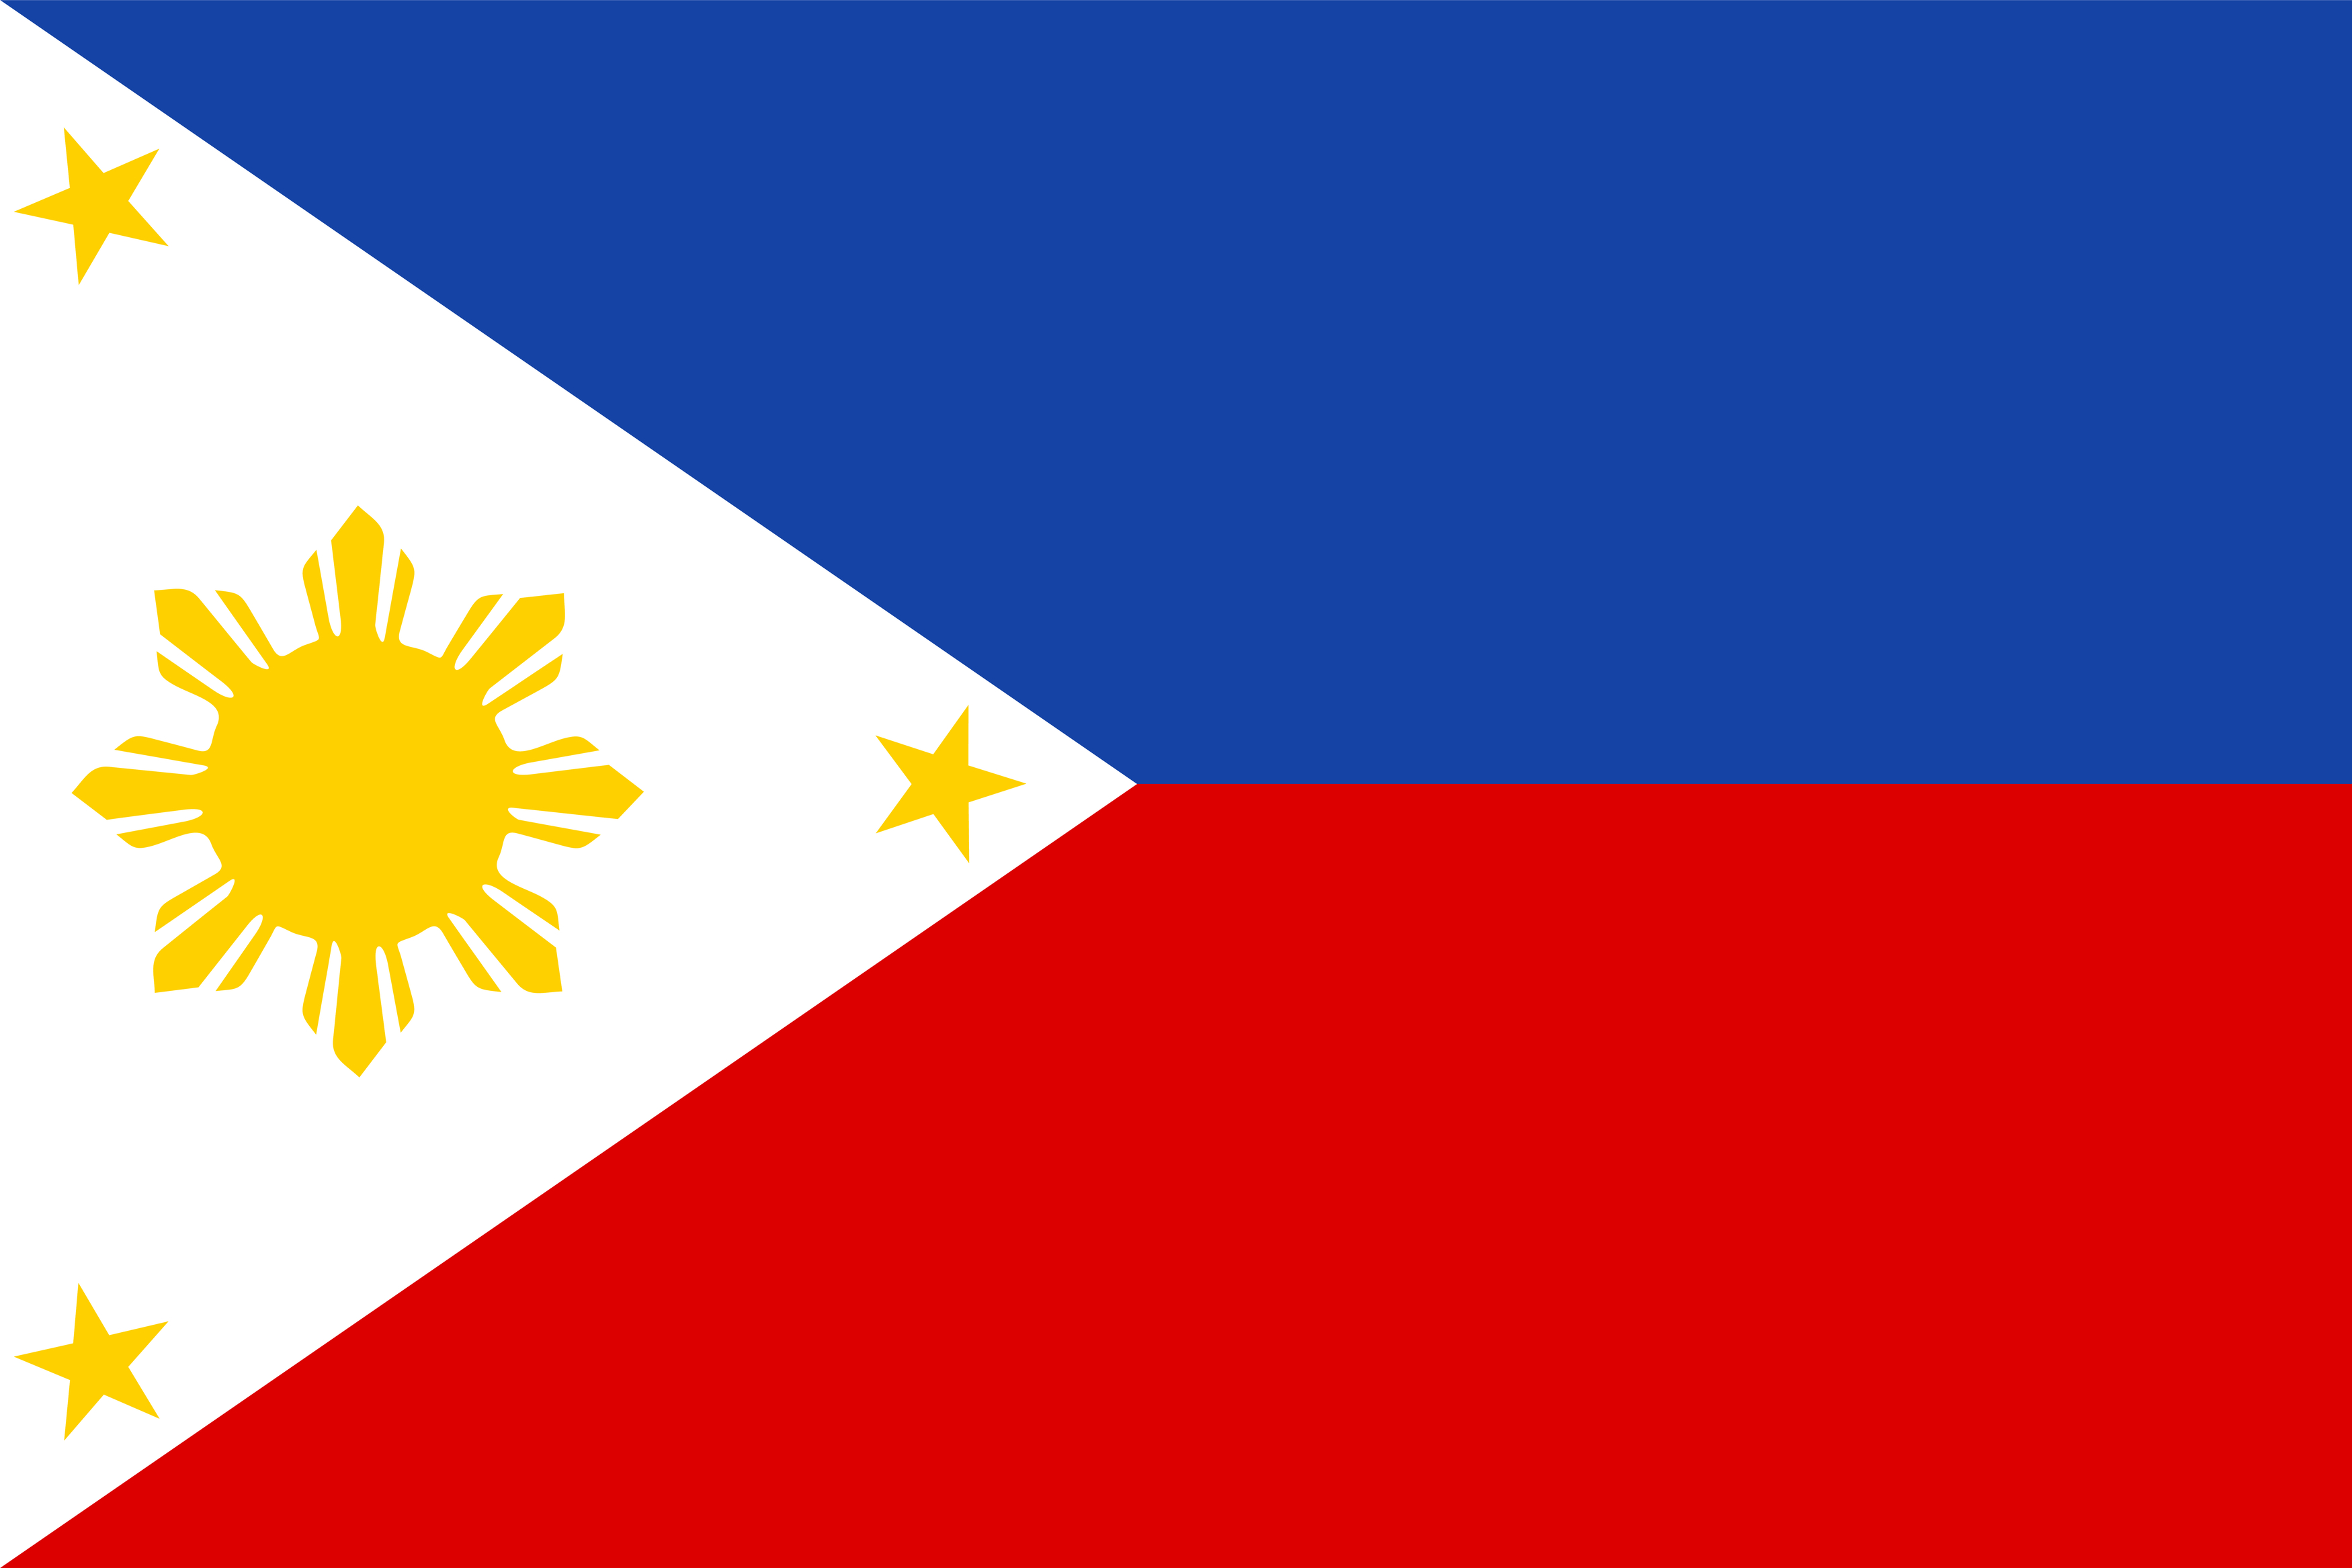 The National Flag of the Philippines features two equal horizontal bands of blue (top) and red with a white equilateral triangle, based on the hoist side of the flag.